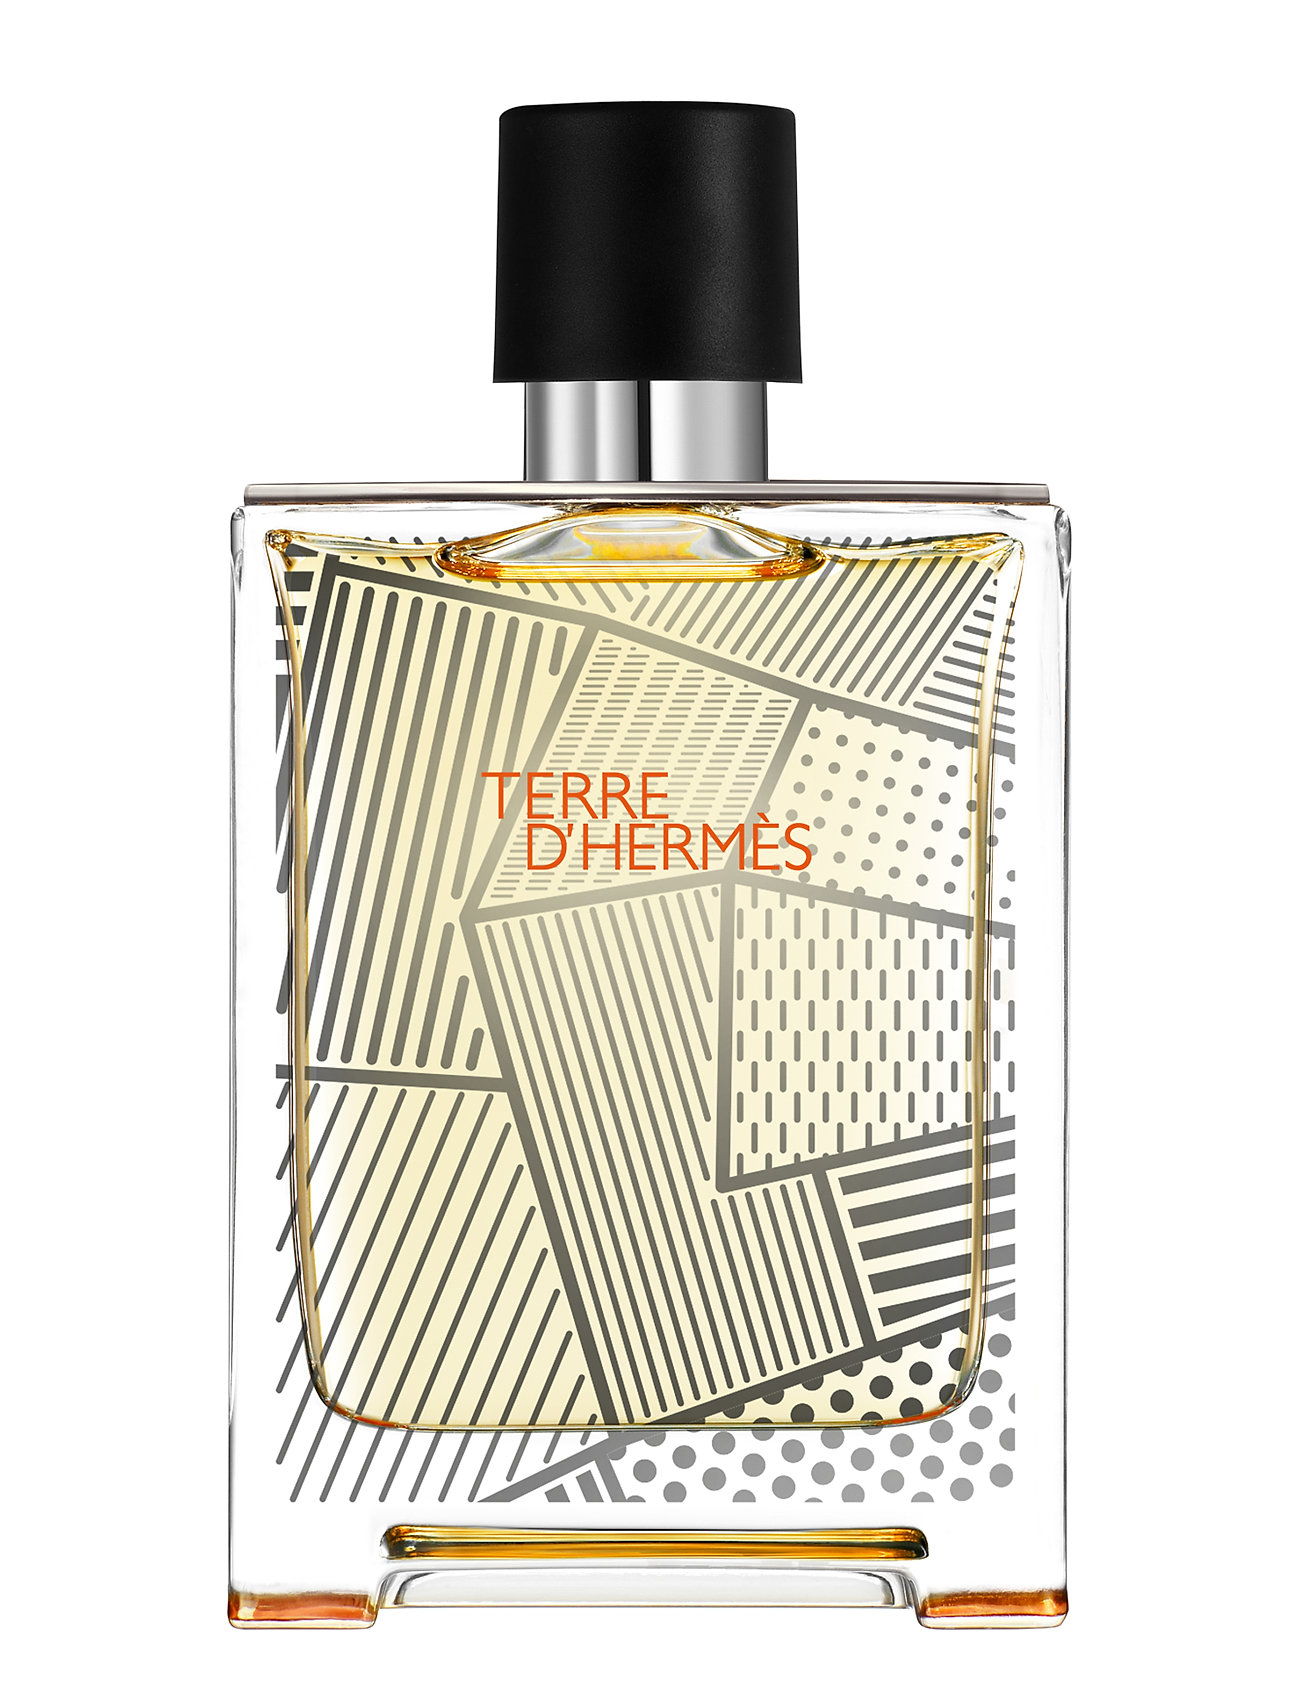 HERMÈS TERRE D'HERMÈS EDT 2020 LTD EDITION - CLEAR